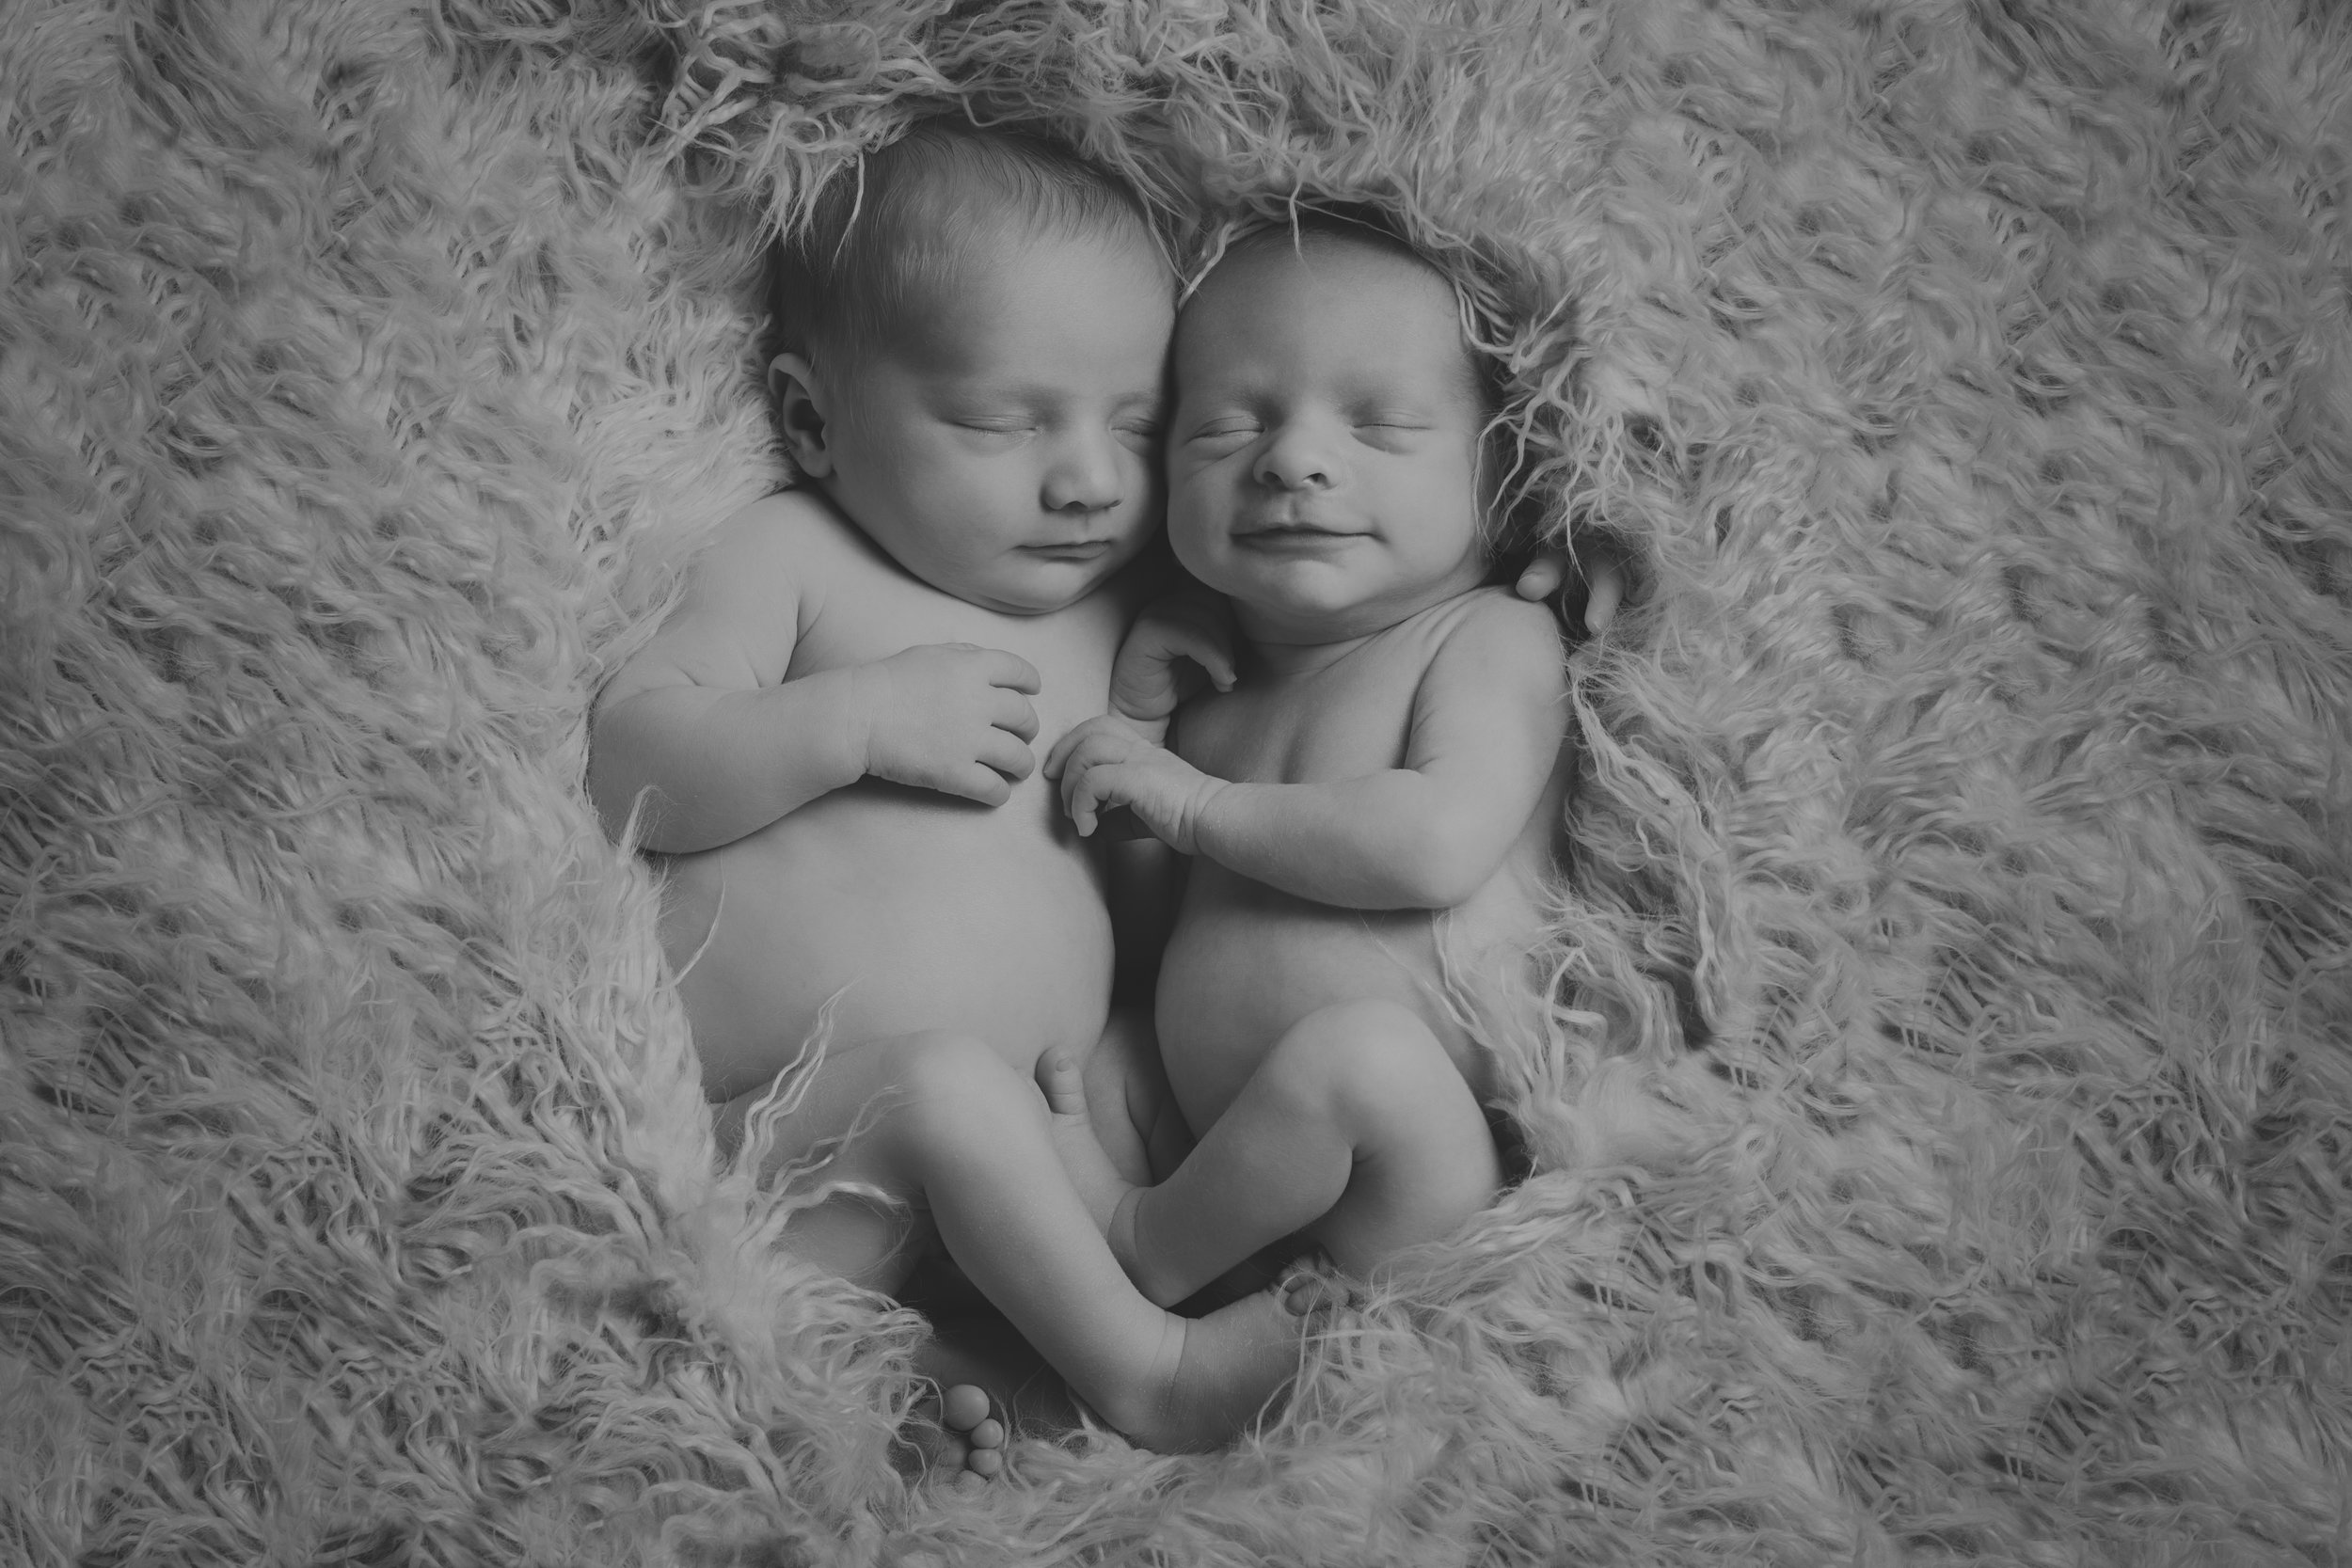 Harry & Jack - We took our 3 week old twin boys to Leri, who was absolutely amazing. We can't wait to see the photos. We were made to feel extremely welcome throughout the shoot and nothing was too much trouble. Leri had so much patience with the boys. I would highly recommend her. We will definitely be going back when the boys are older. Thank you so much Leri for this special session. Xx